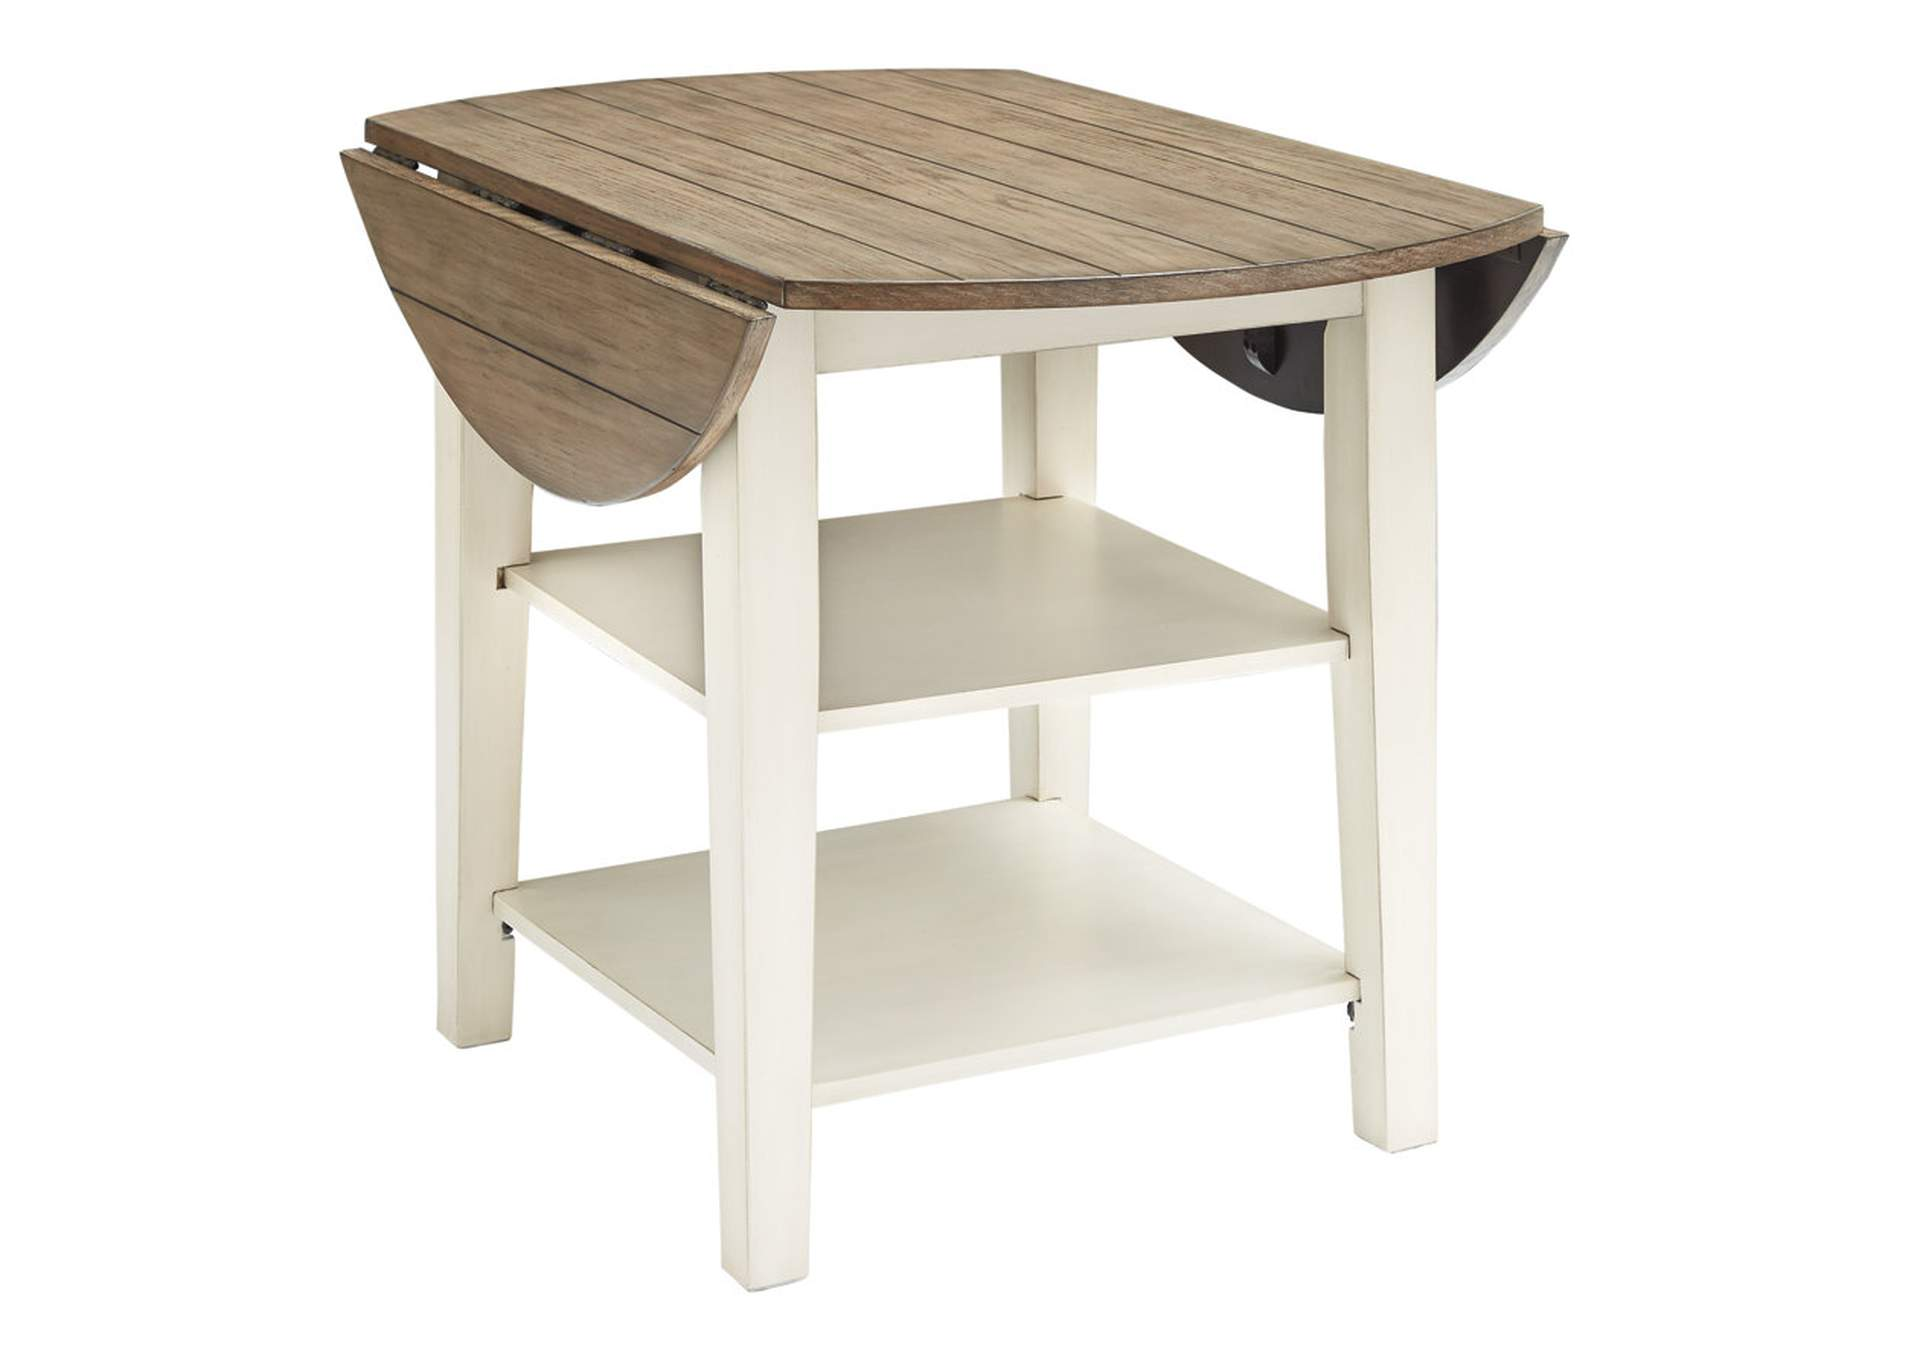 Bardilyn Dining Room Table,Benchcraft